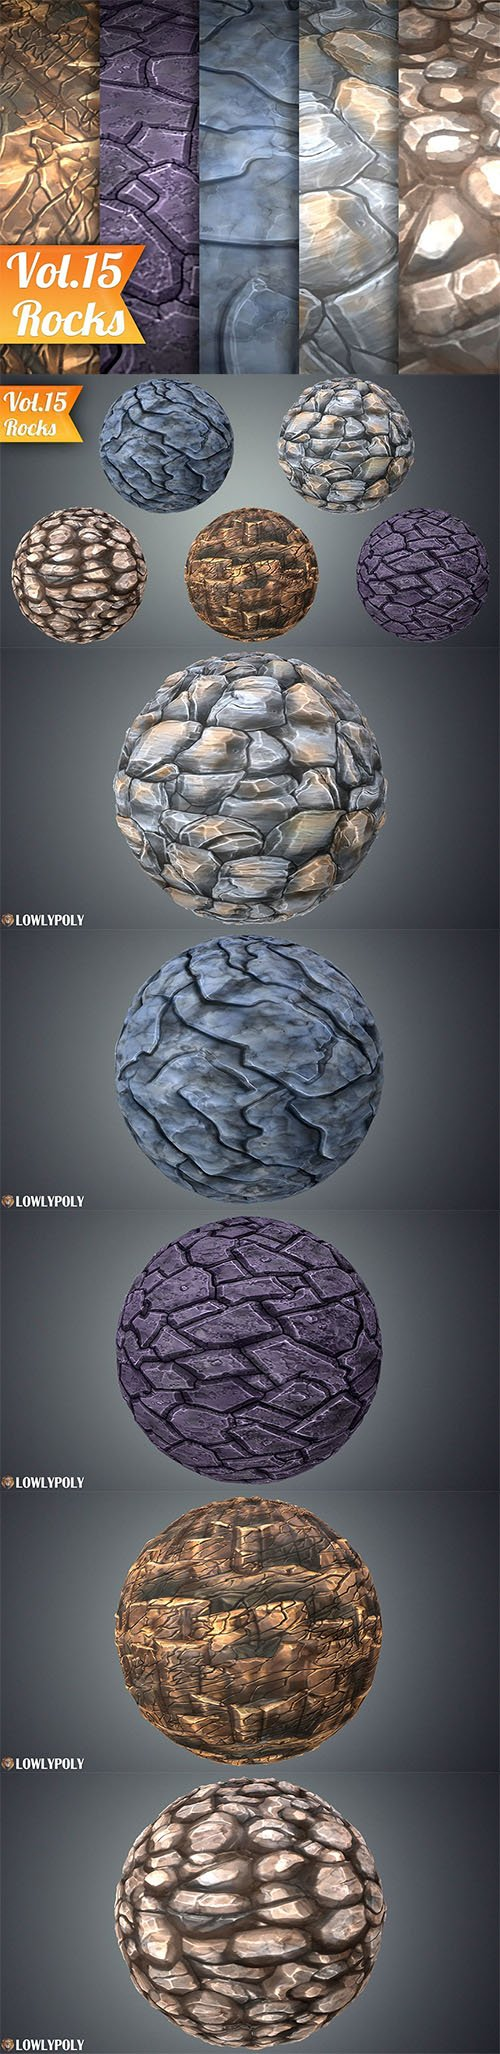 Stylized Rocks Vol 15 - Hand Painted Texture Pack Texture